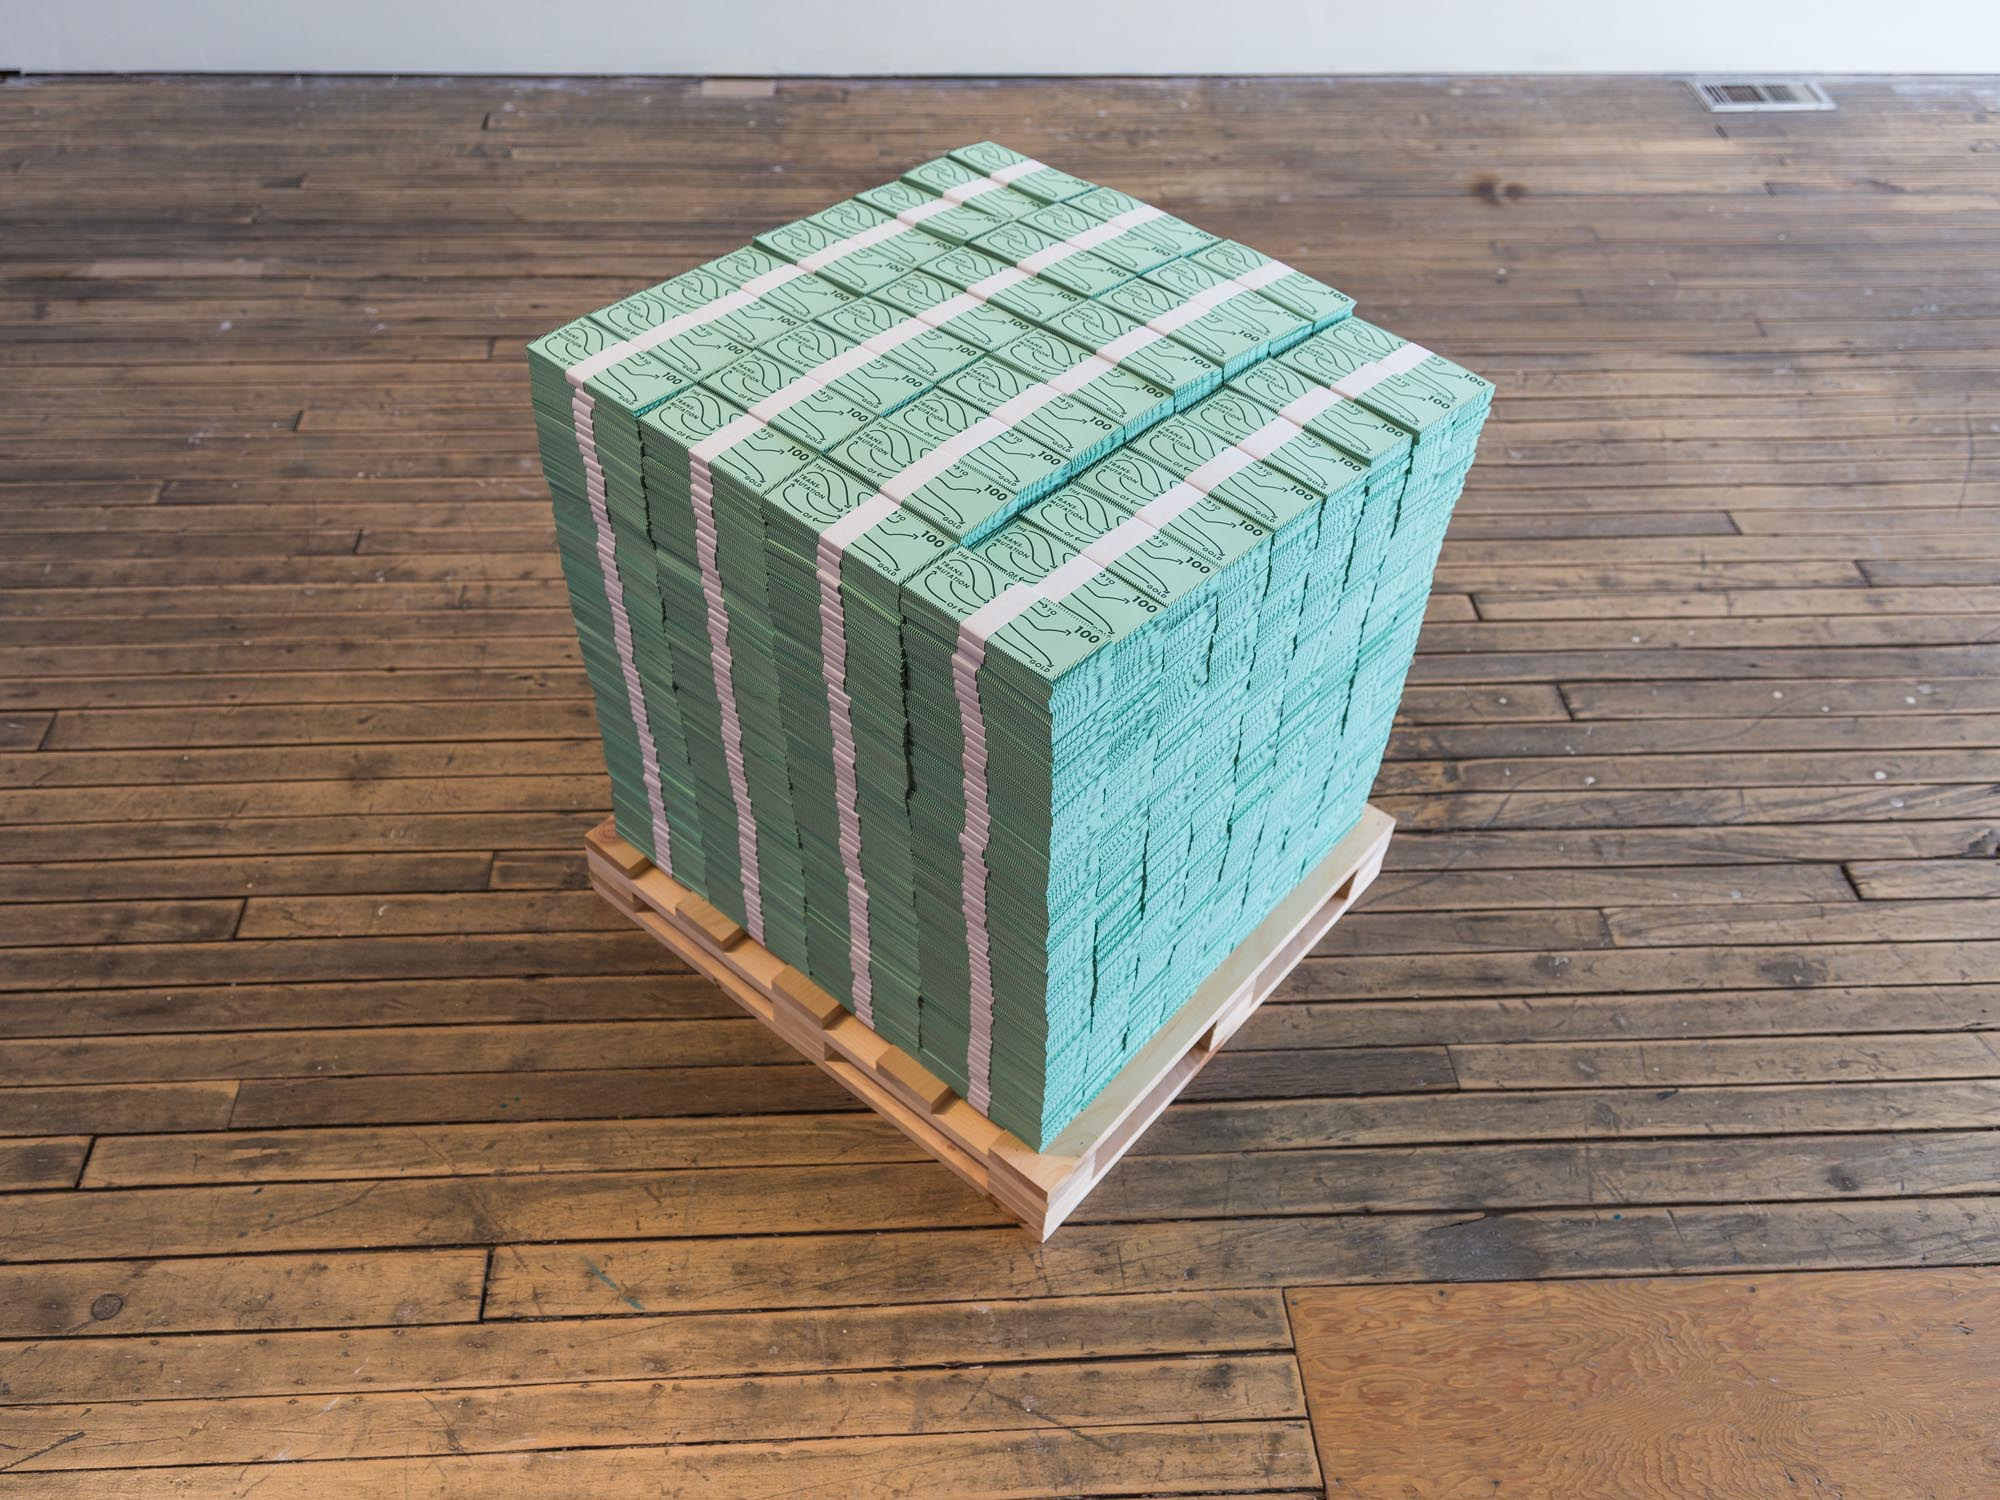 Anthony Warnick, The Transmutation Of Flesh To Gold 2018 Dimensions Variable Prison products A stack of $100 dollar bills equal to the $162,510,000, the profits for Correction Corporation of America for 2017